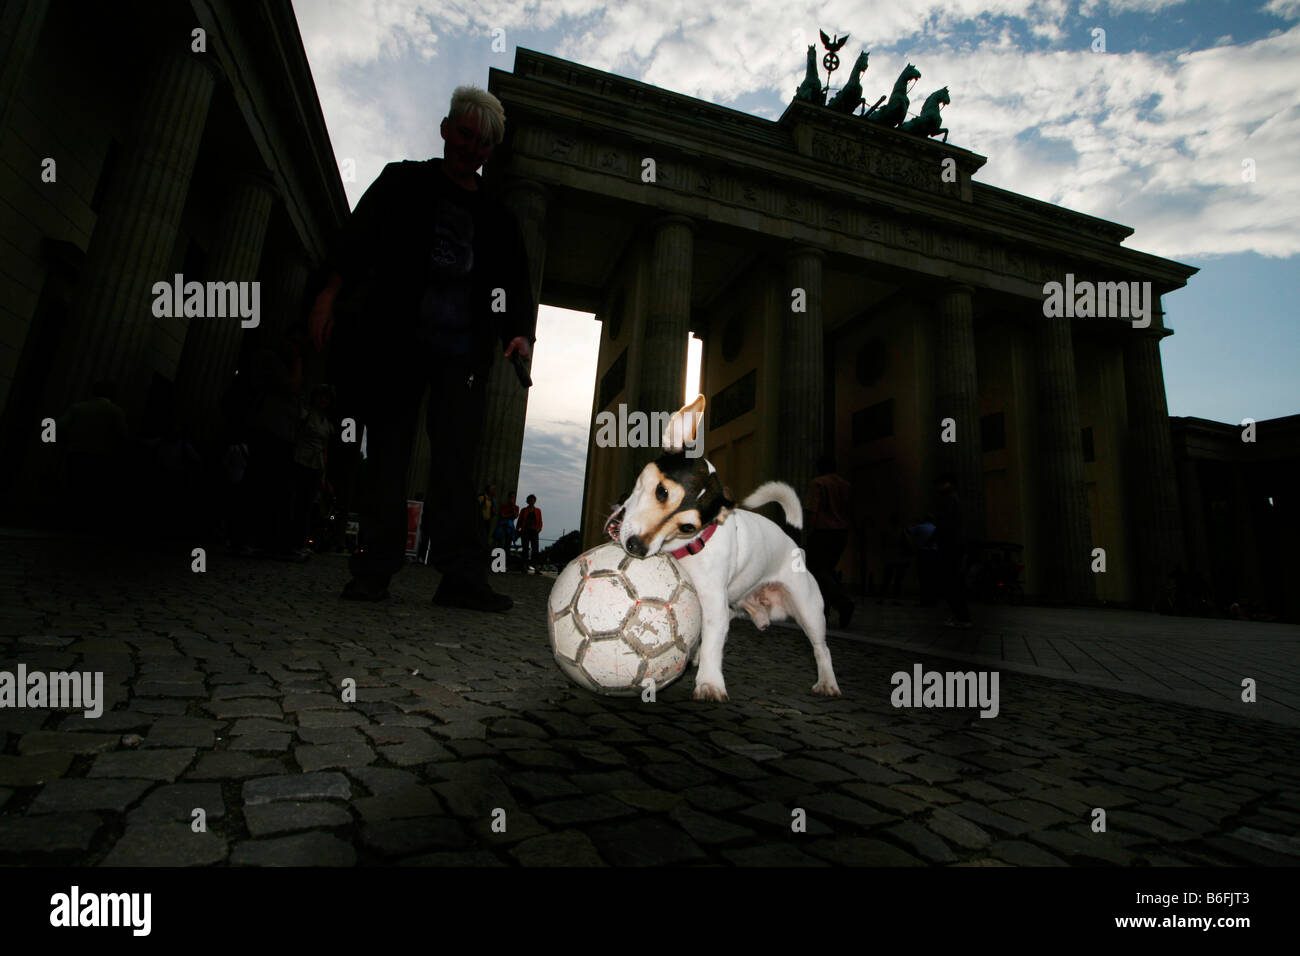 Jack Russel Terrier playing with a ball in front of the Brandenburg Gate at night, Brandenburger Tor, Berlin, Germany, - Stock Image